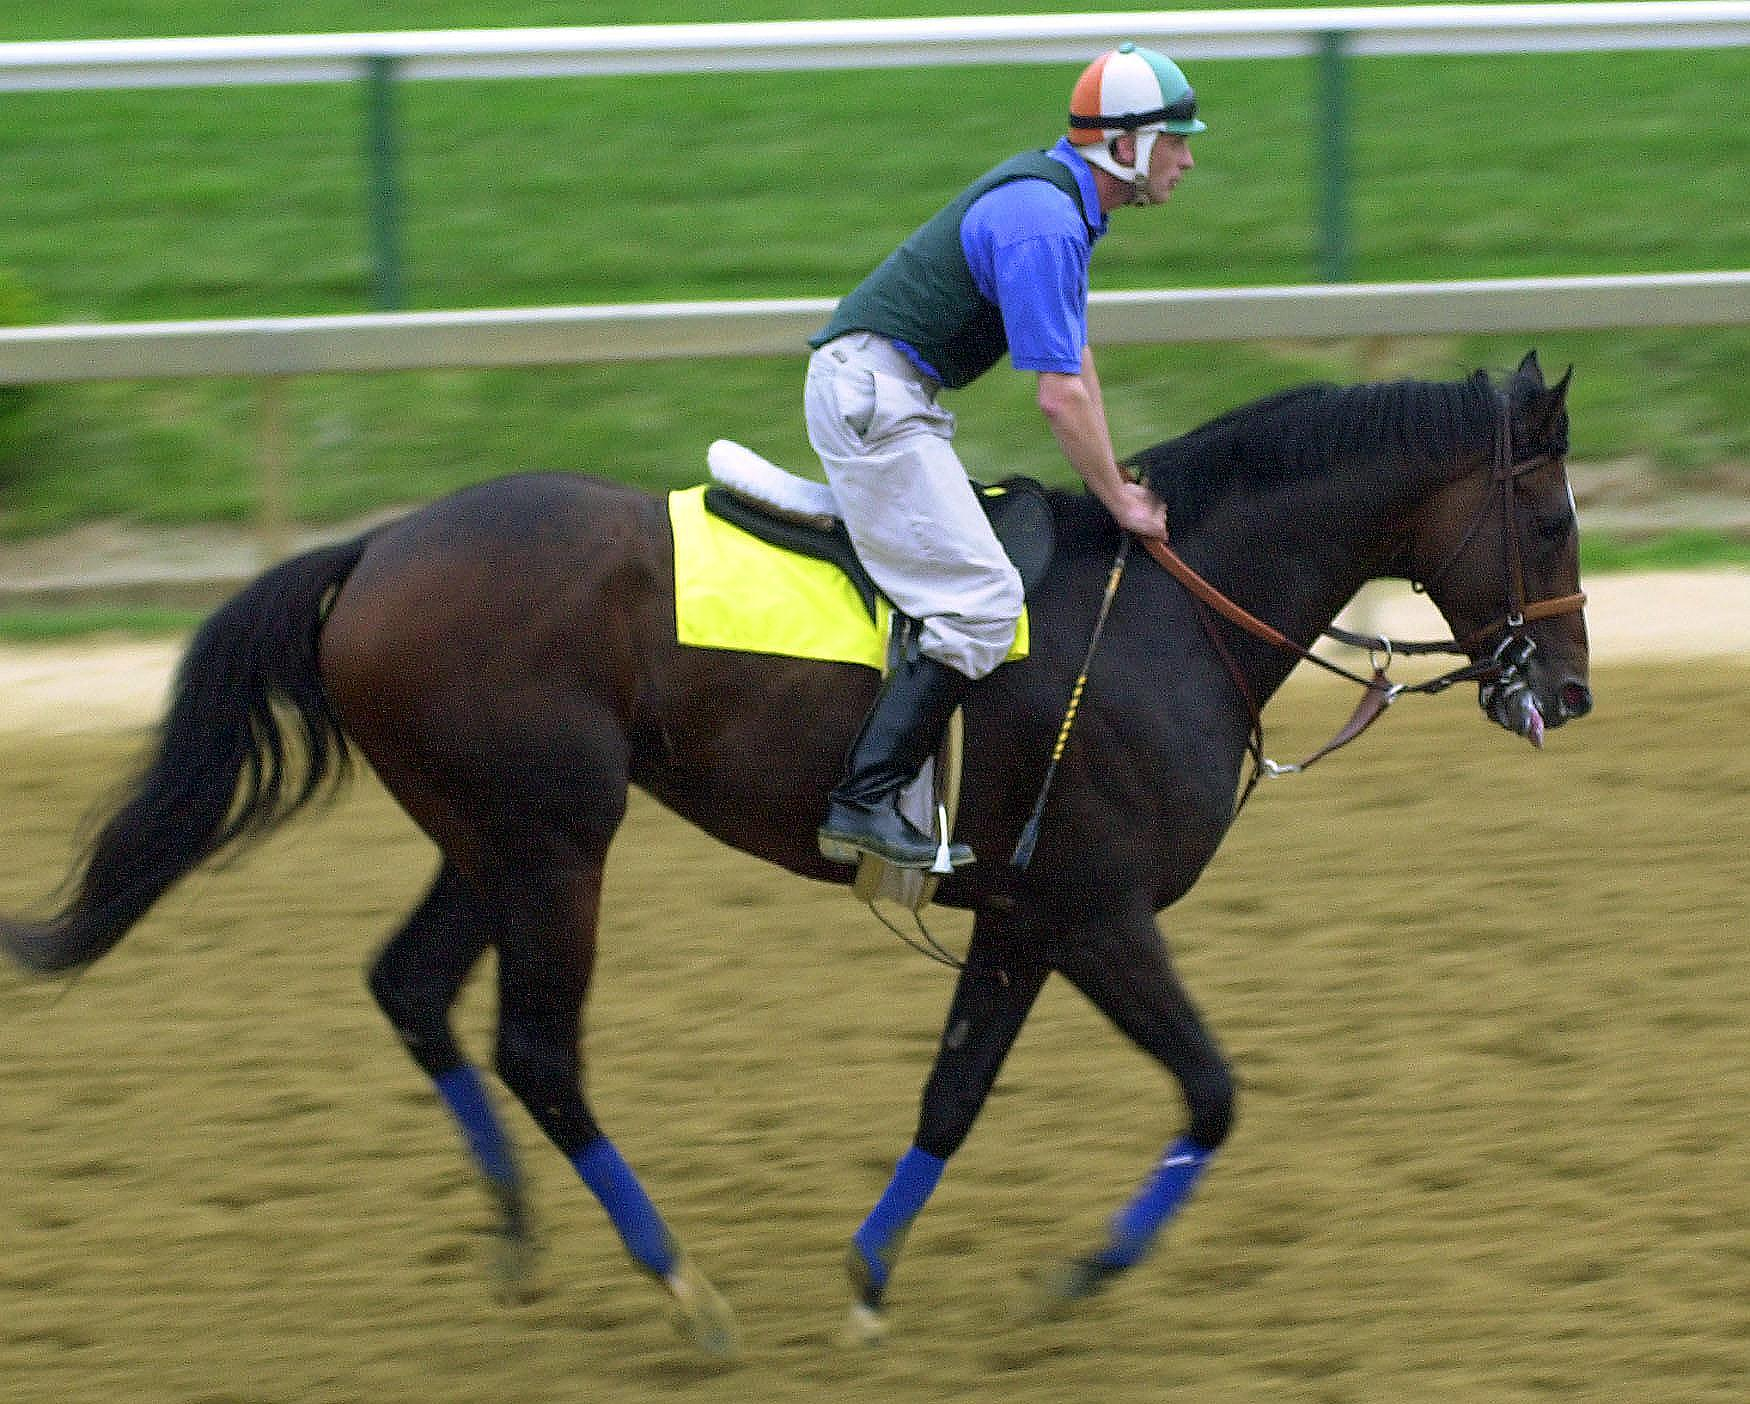 Kentucky Derby winner and Preakness Stakes favorite Fusaichi Pegasus trots during an early morning workout